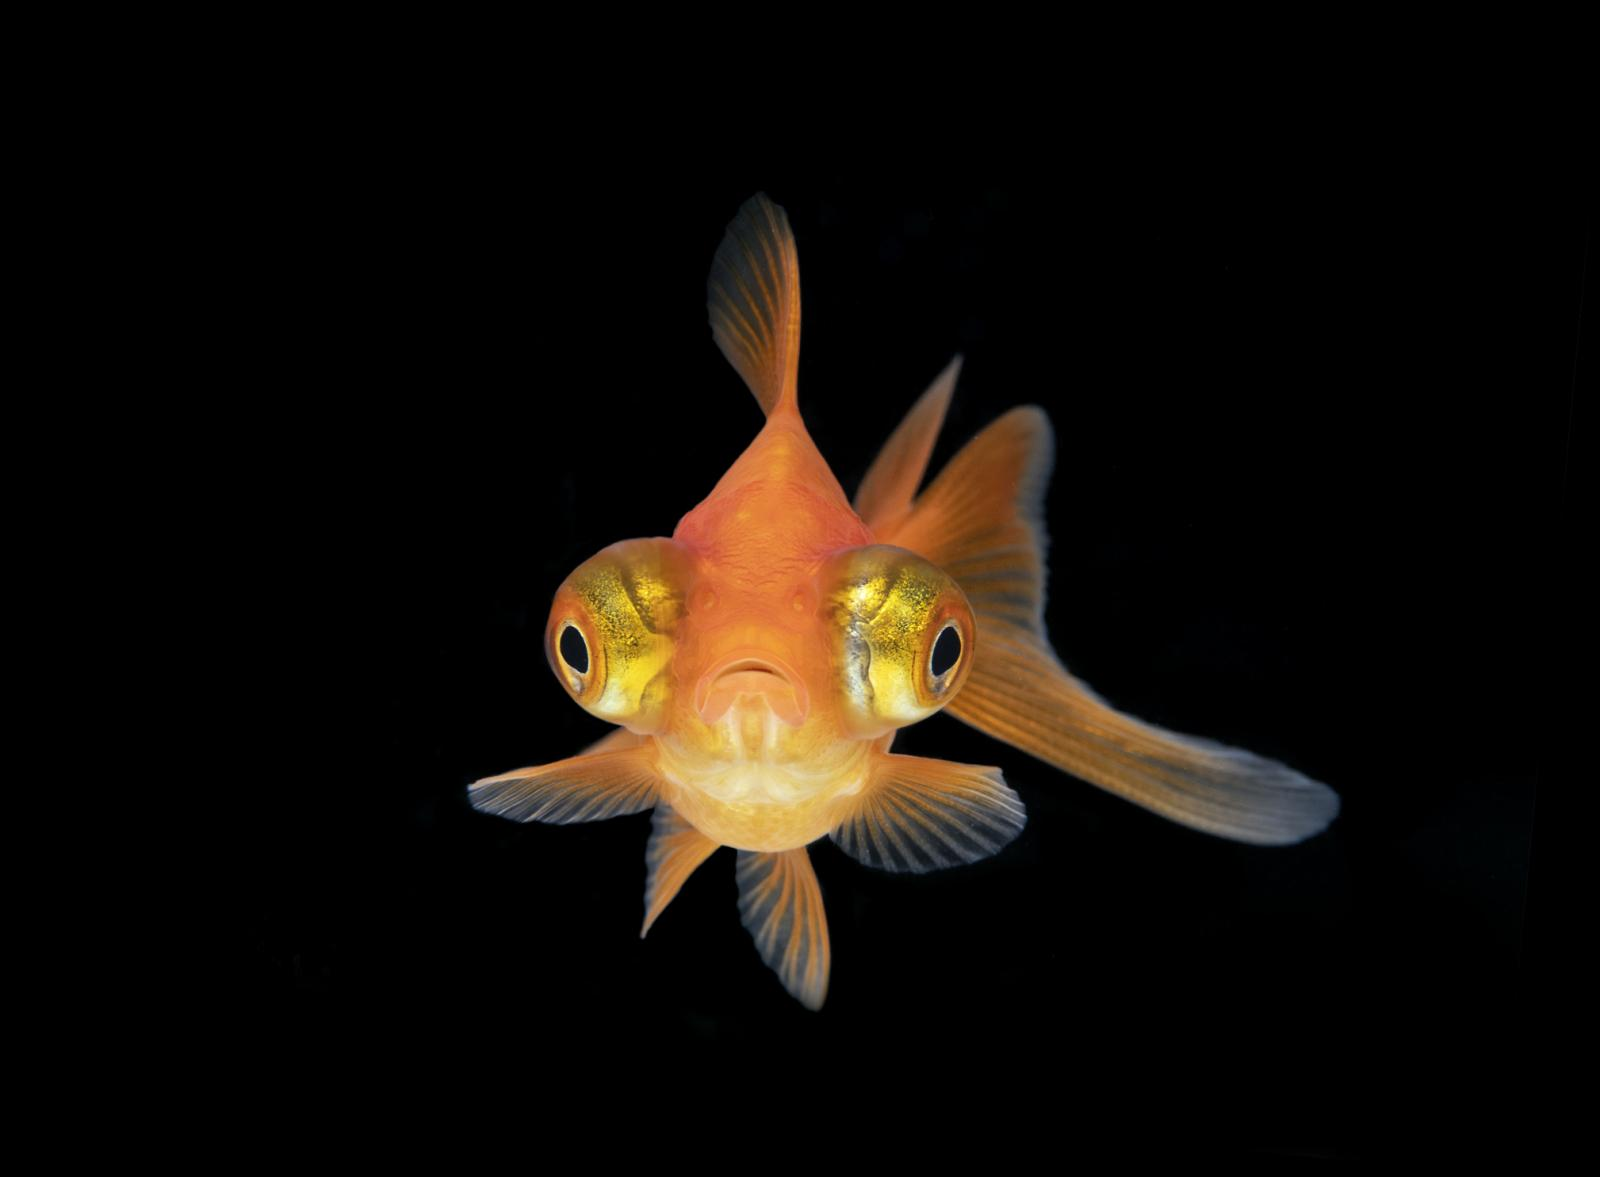 Telescope eye goldfish from the front